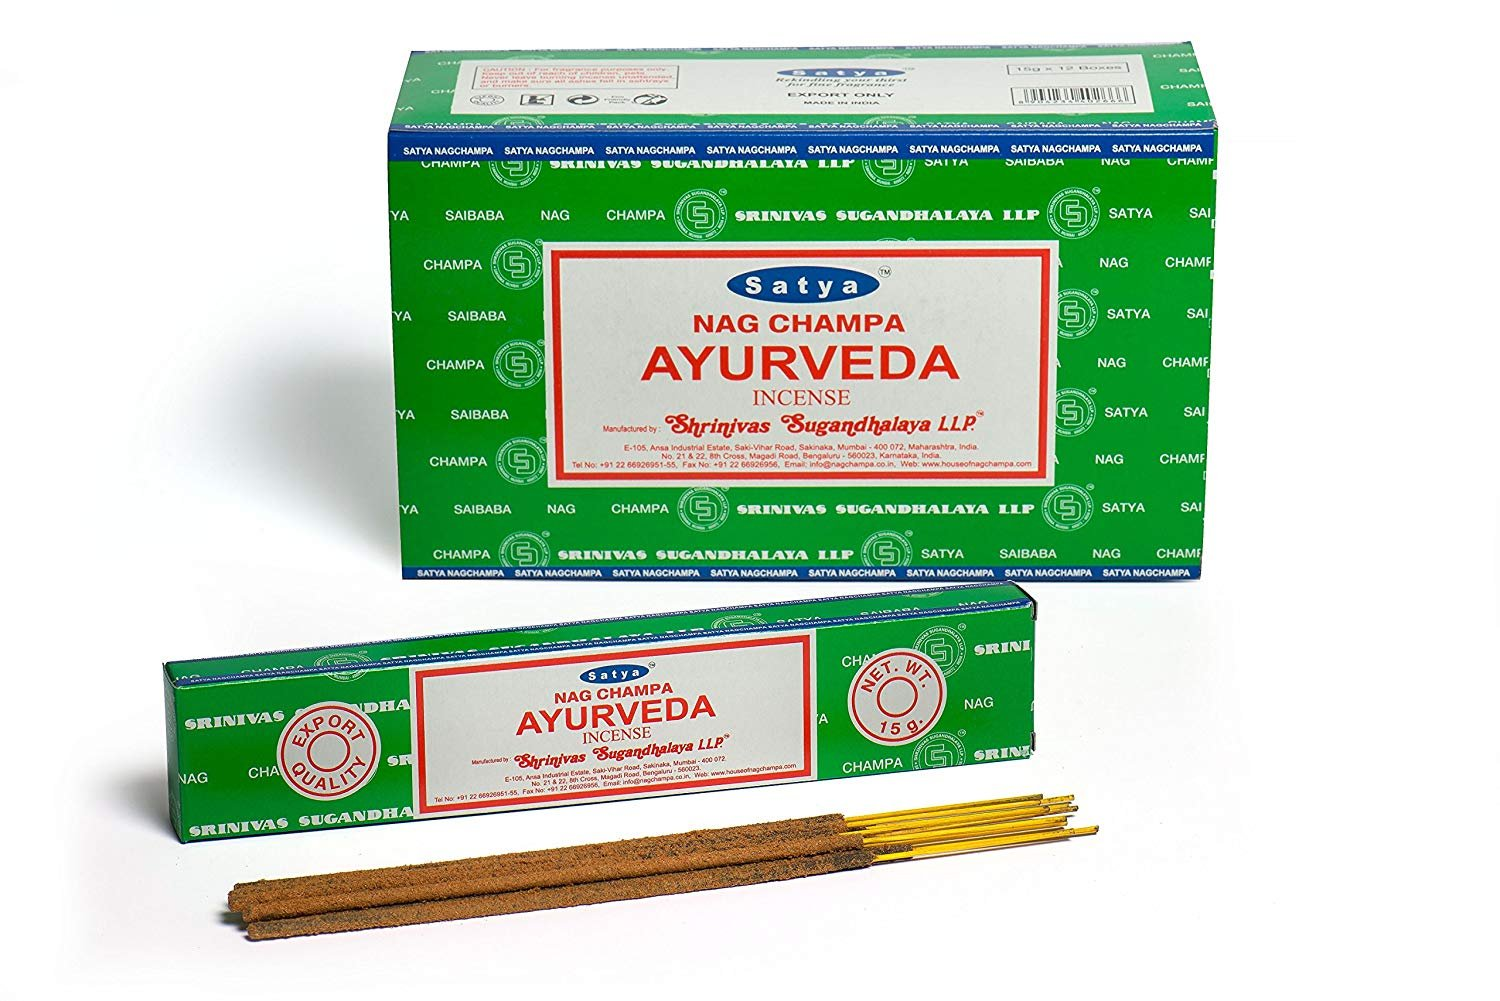 Chi-City Mall Satya Nag Champa Ayurveda Incense Sticks | Signature Fragrance | Net Wt: 15g x 12 boxes = 180g | Exclusively Made in India | Export Quality | Handrolled Non-Toxic Incense